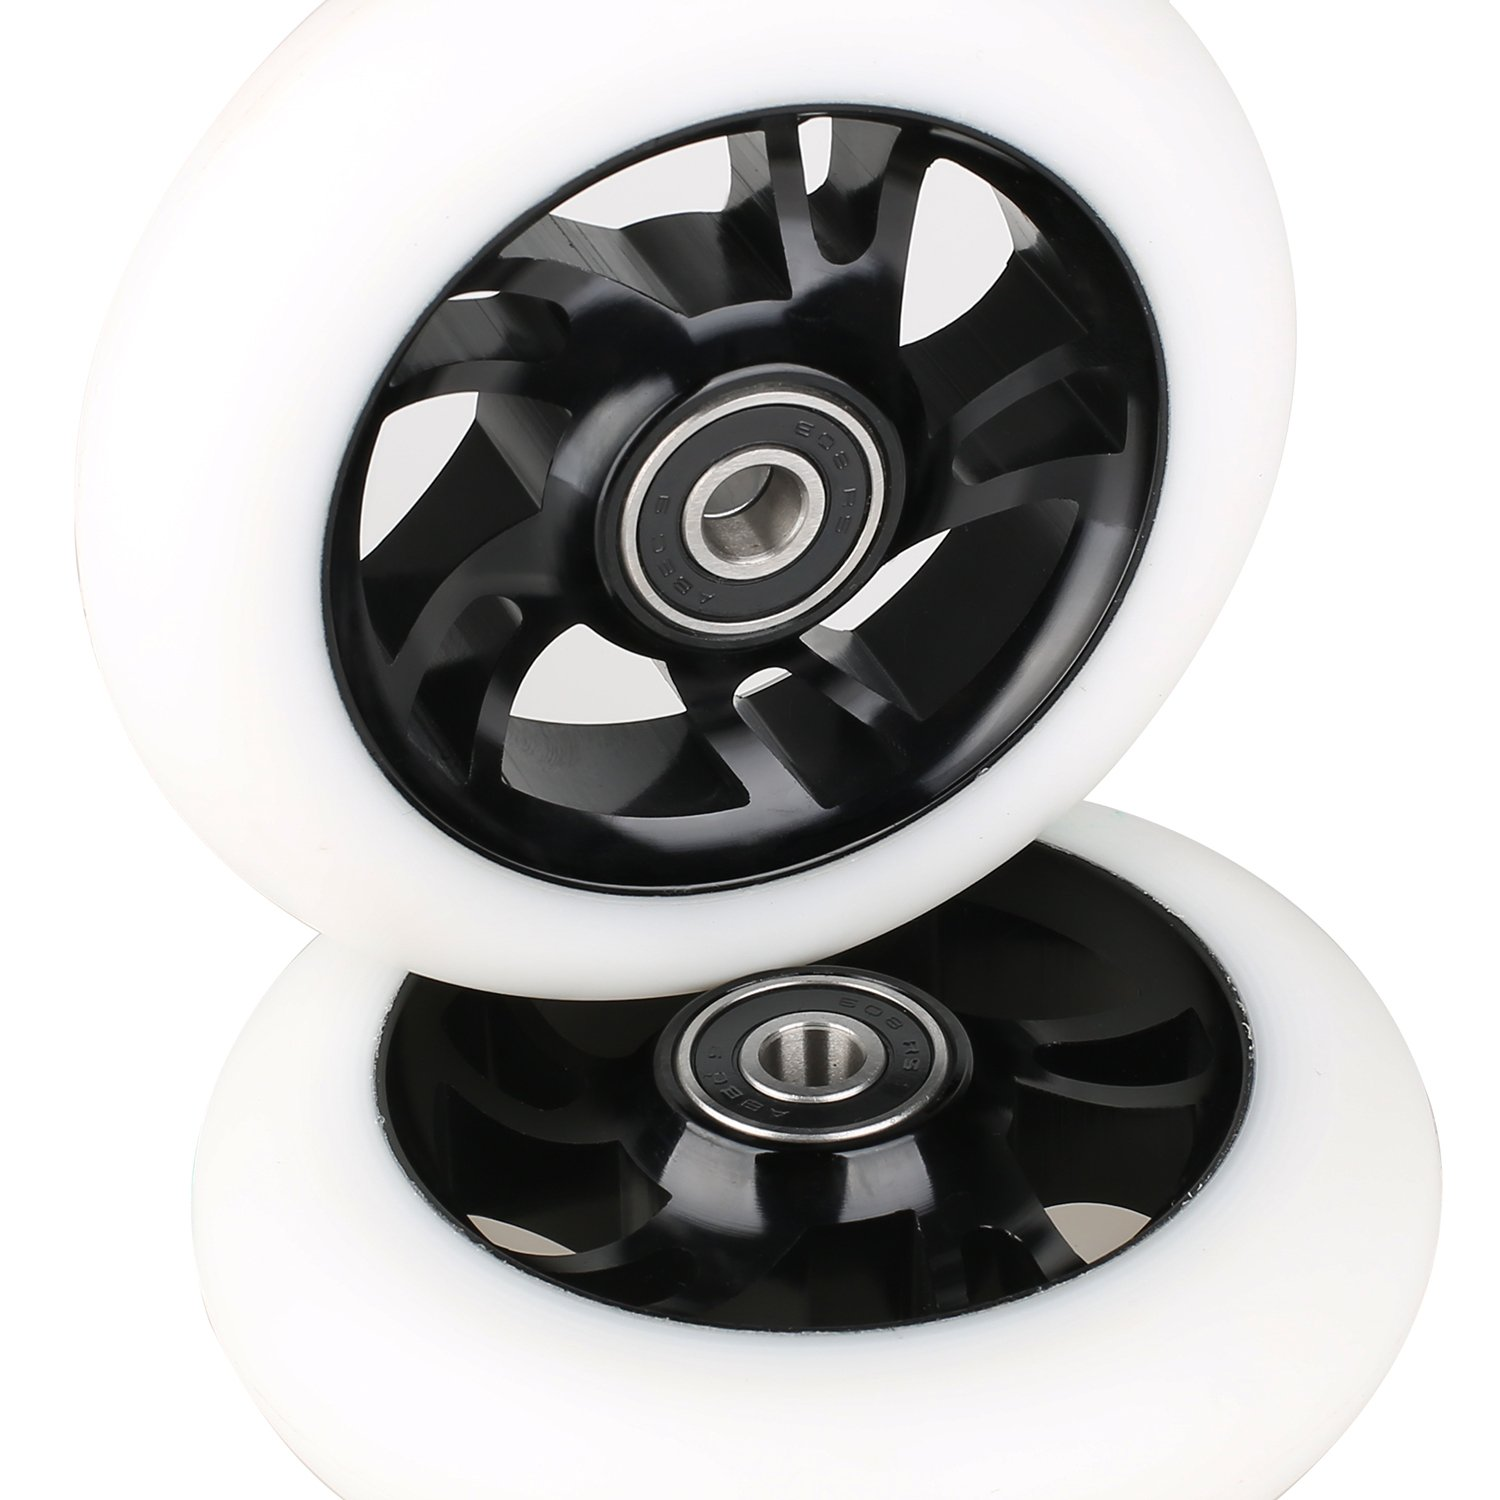 Kutrick 2pcs 110mm Pro Scooter Wheels with 2pcs Pro Scooter Pegs Kit